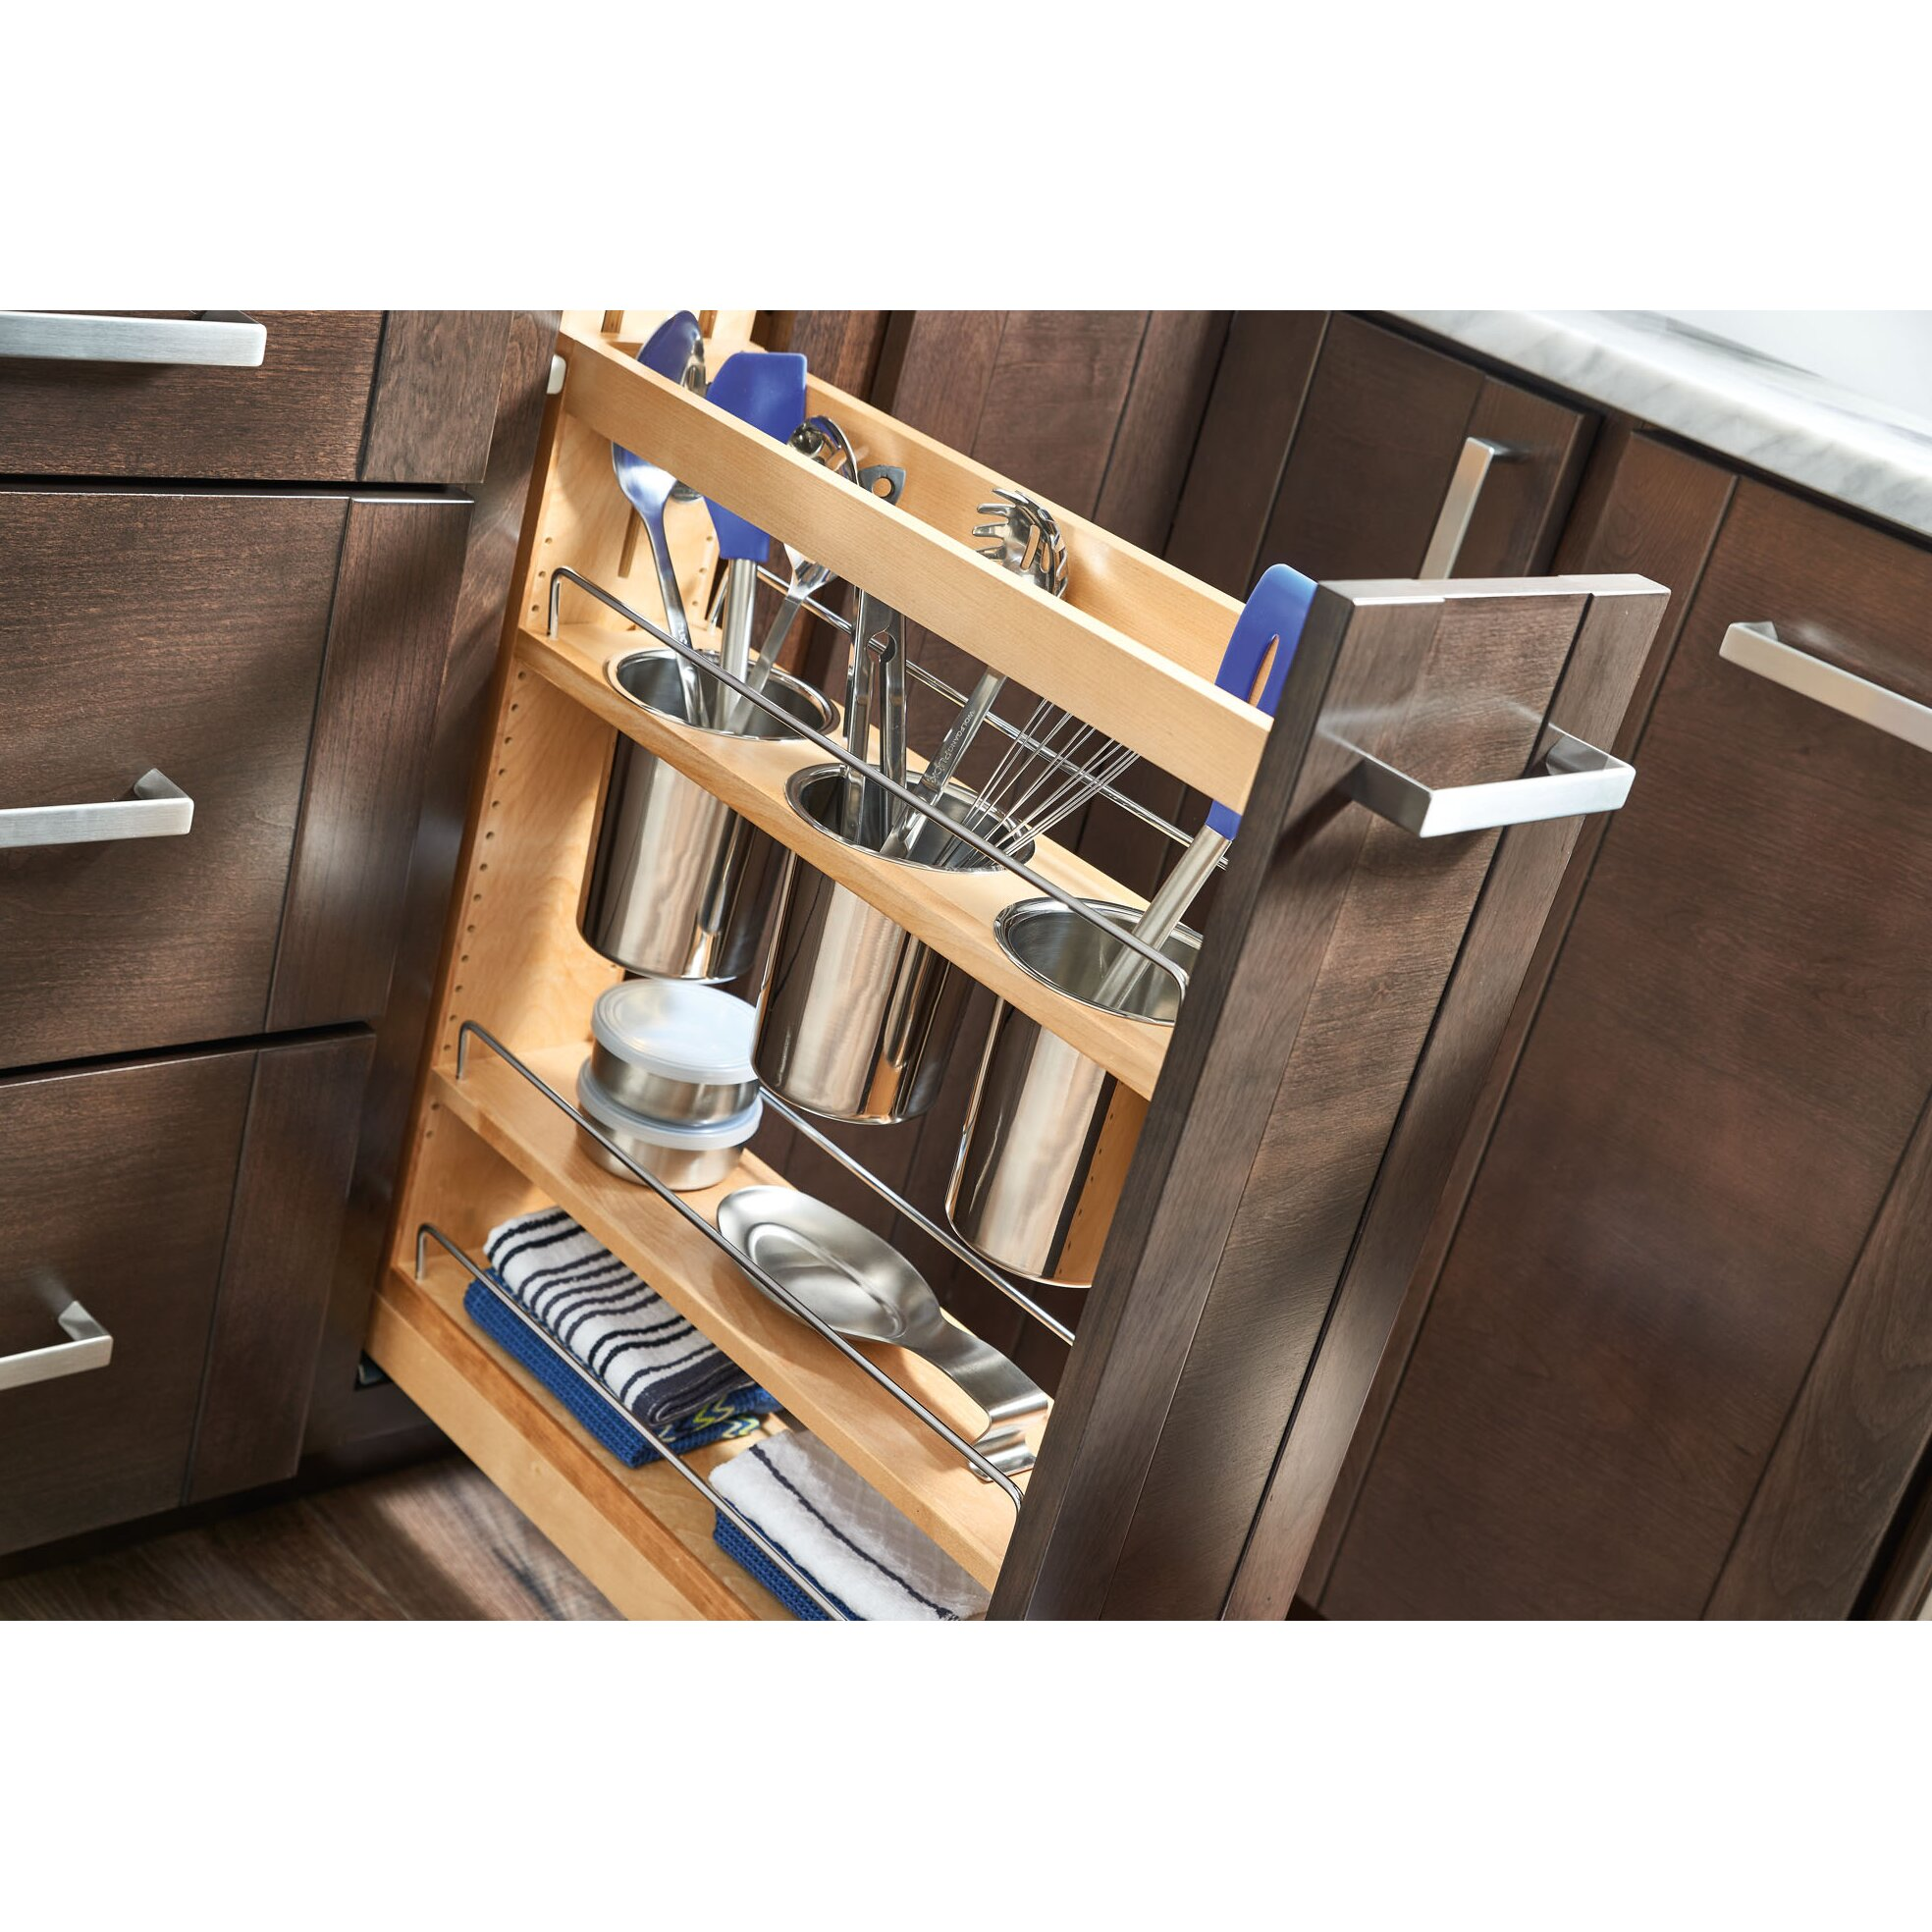 organizing a kitchen 5 quot pull out cabinet utensil organizer wayfair 1261